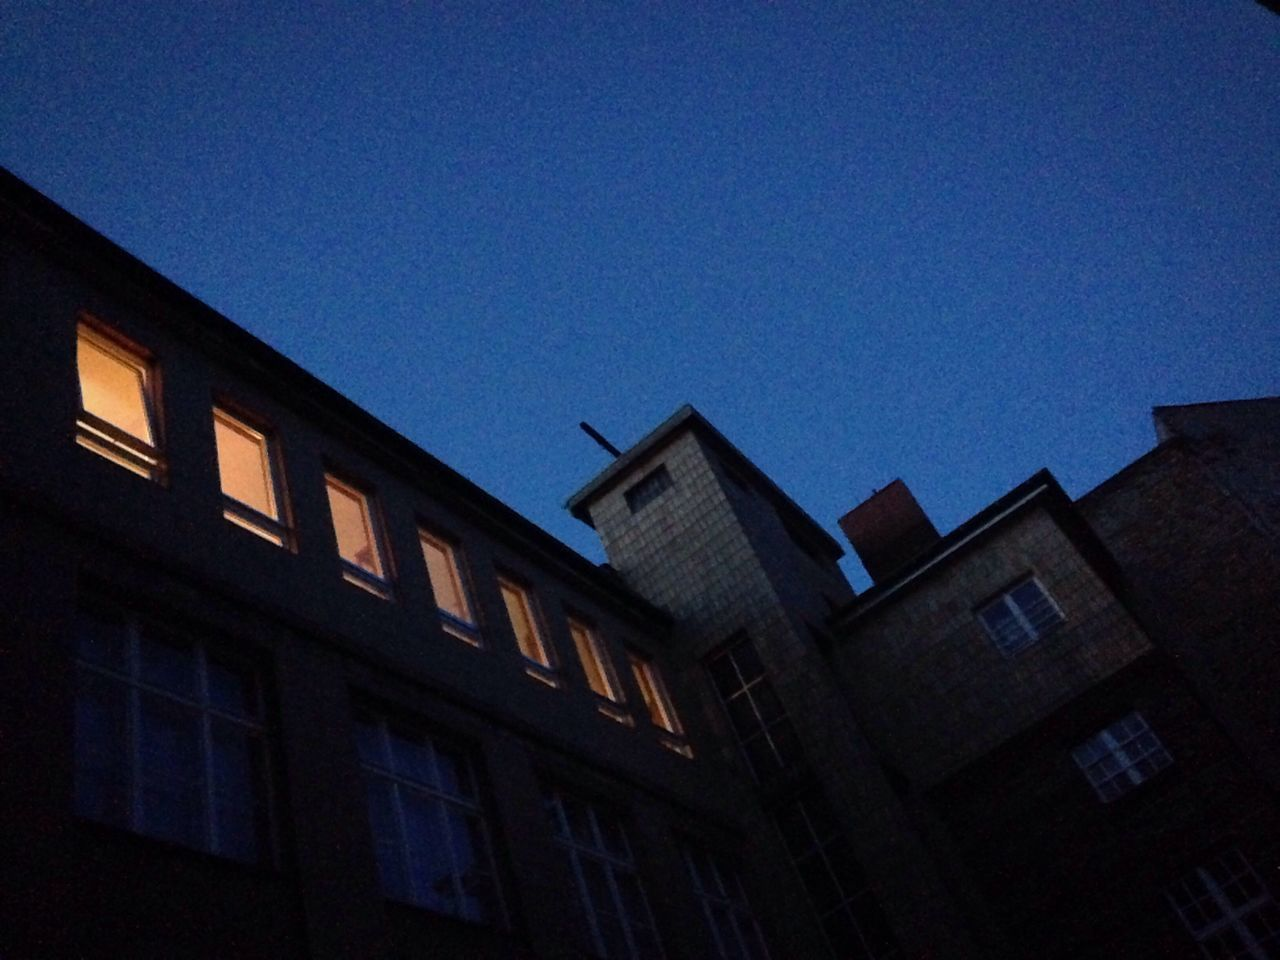 At night Architecture Low Angle View No People Outdoors At Night Lookingup Lights In The Dark Blue Sky Melancholic Dark Mood Sky Illuminated Urbanphotography Cityscape Hinterhof Backyard Berlin Photography